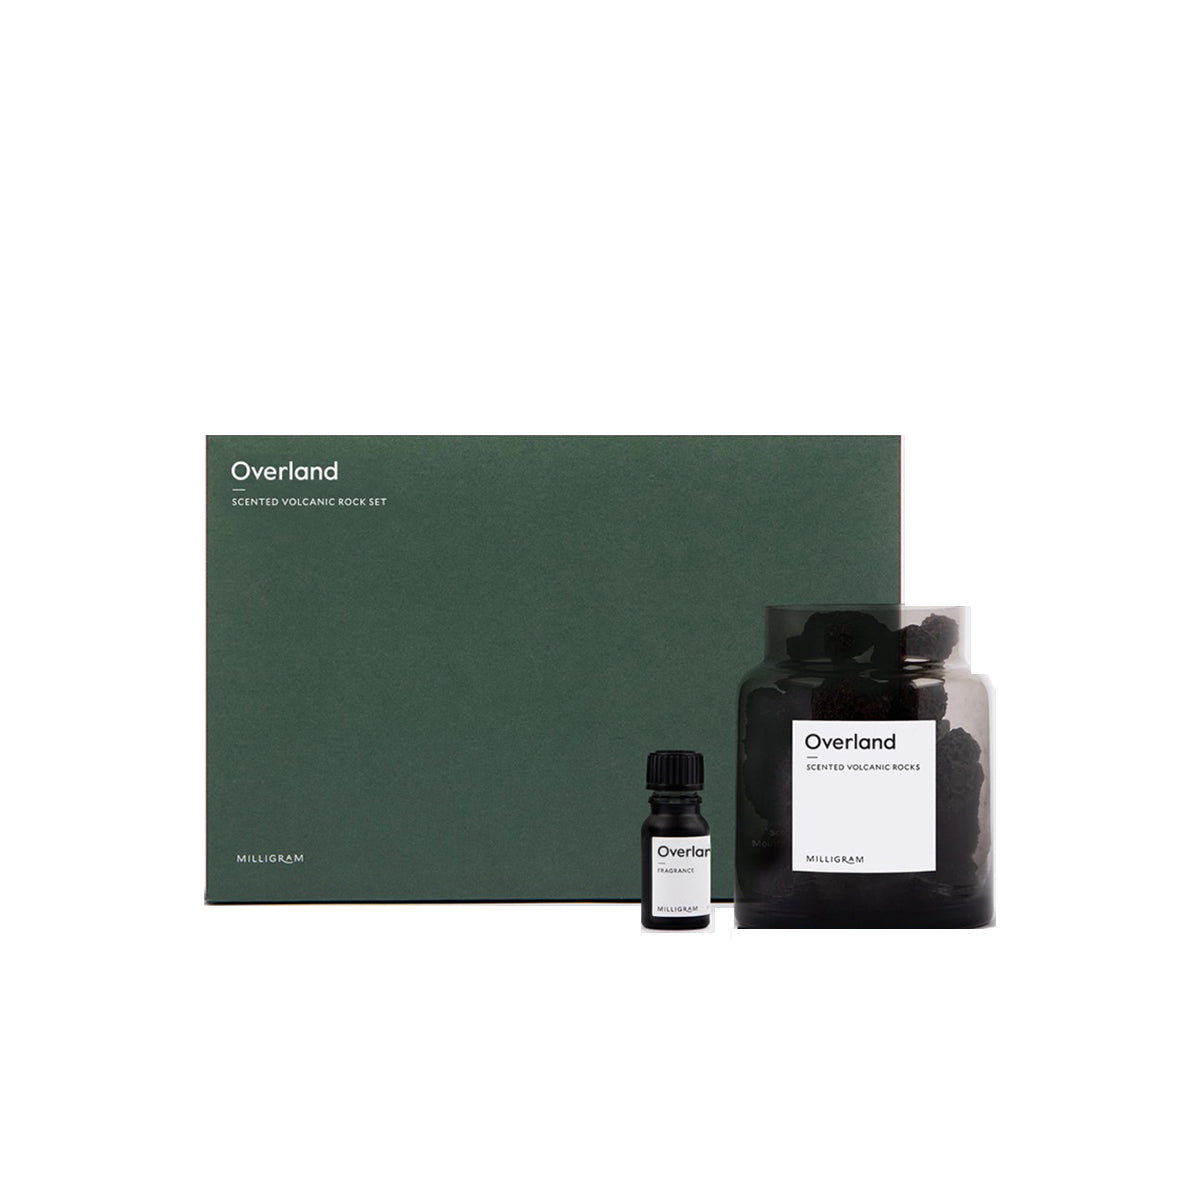 Scented Volcanic Rock Set / Overland